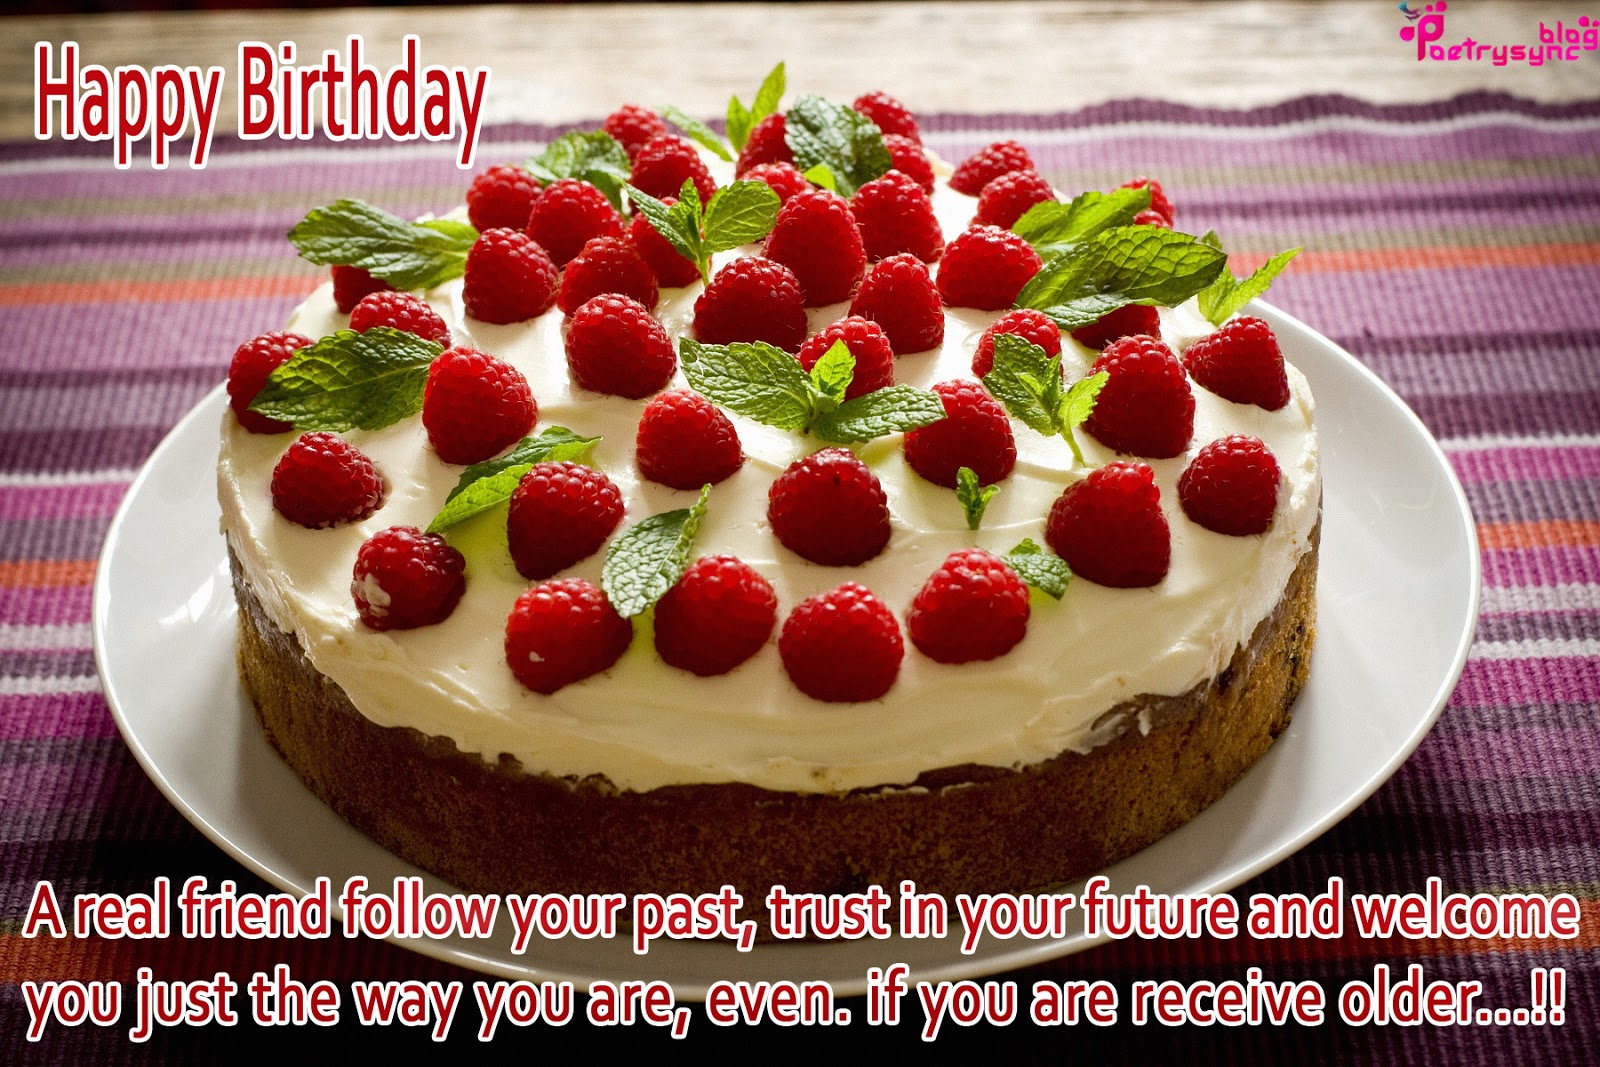 Happy Birthday Text Messages And Images Collection